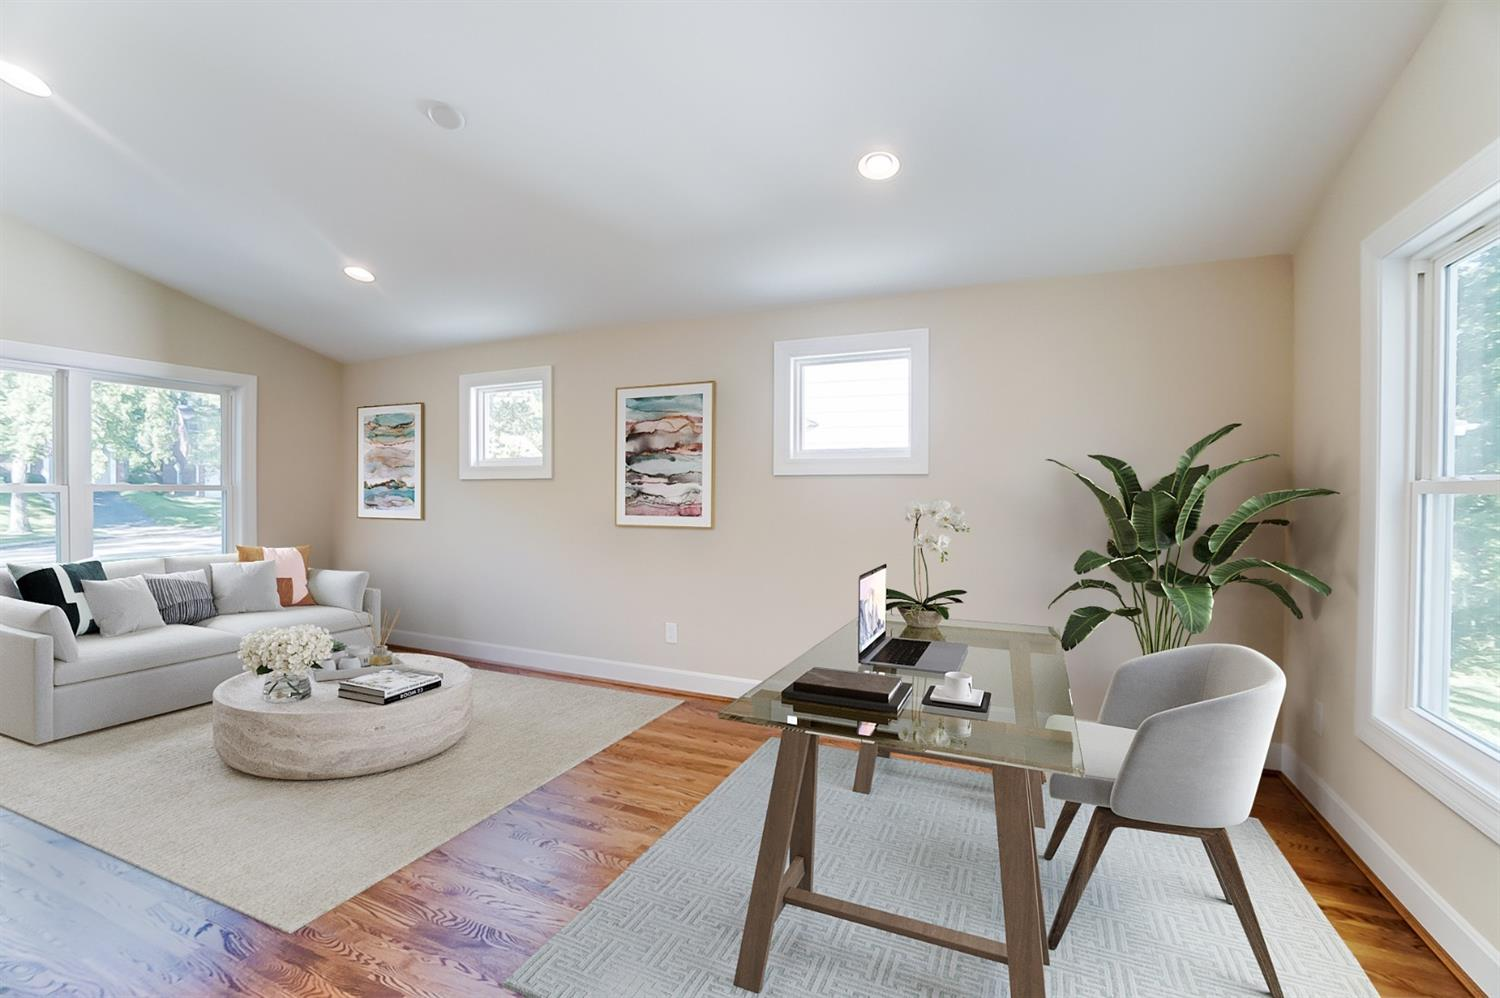 Virtual Staging: Office / Guest Room